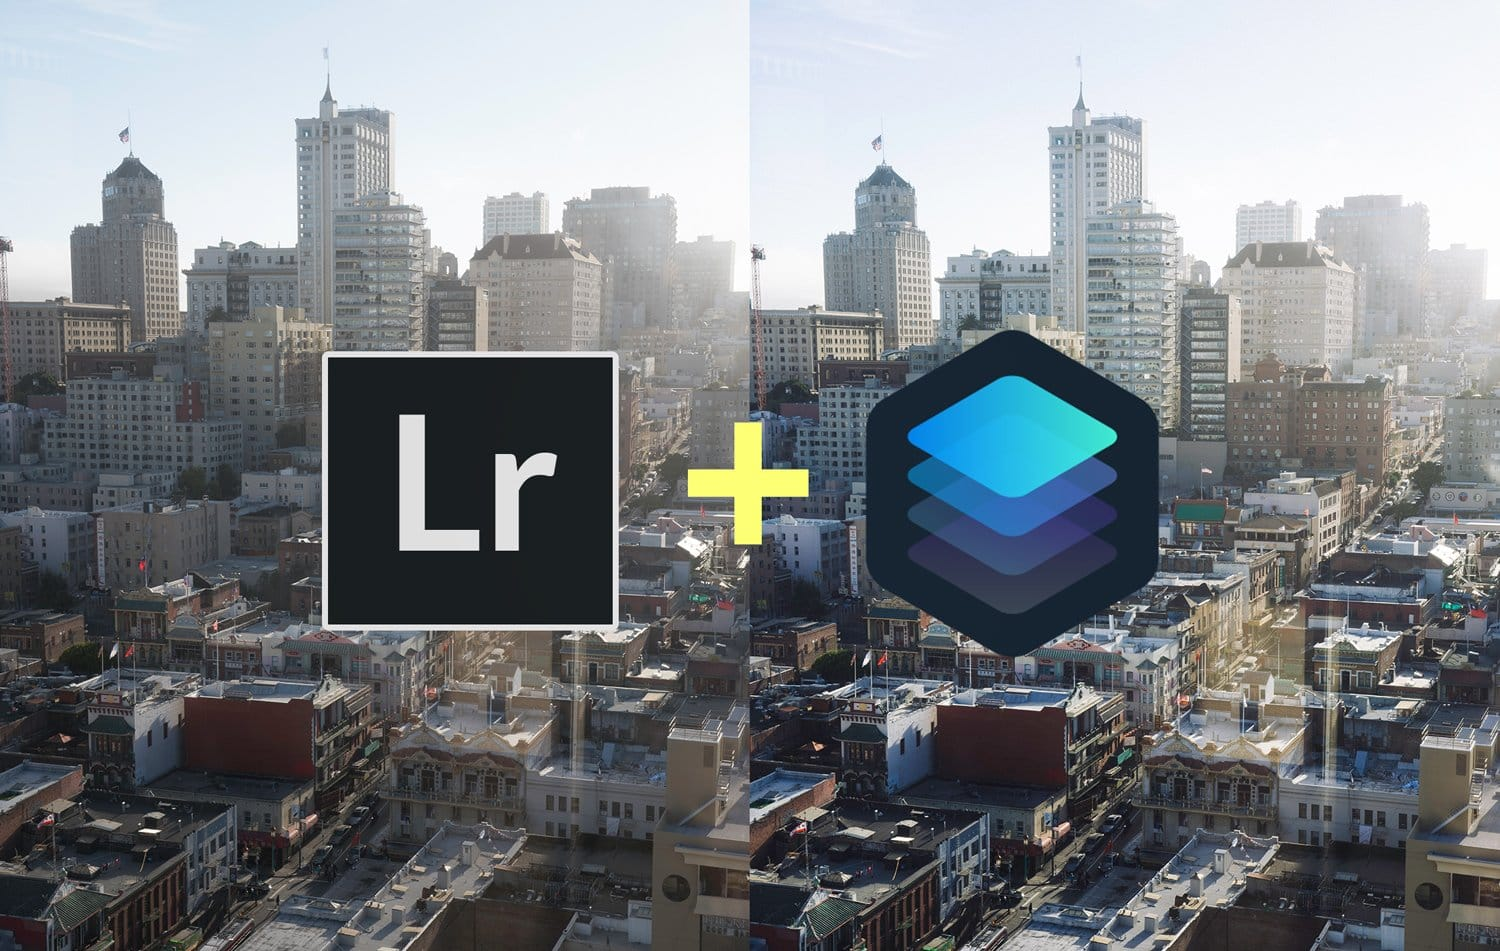 City-Film-Free-Lightroom-Preset-and-Luminar-Look-Presetpro.com-New